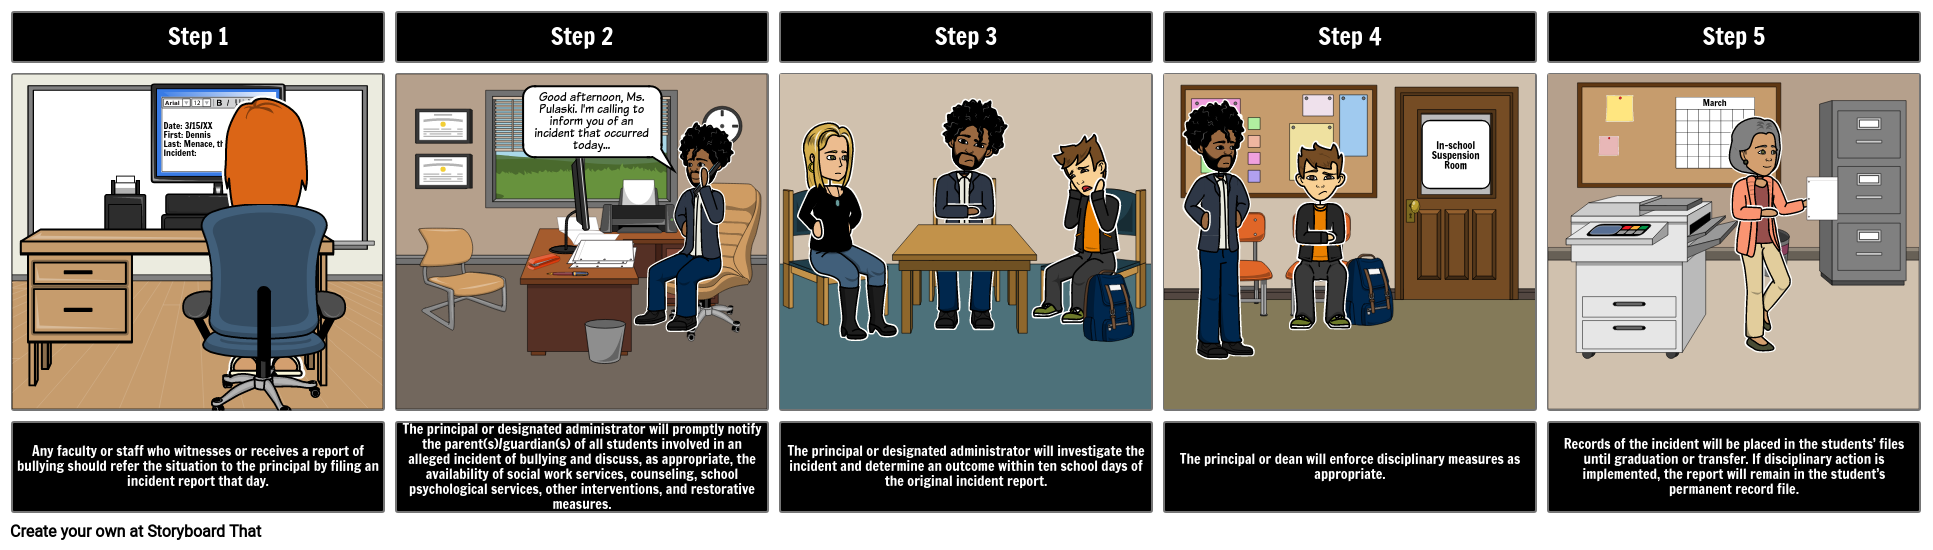 School Process for Handling a Bullying Incident